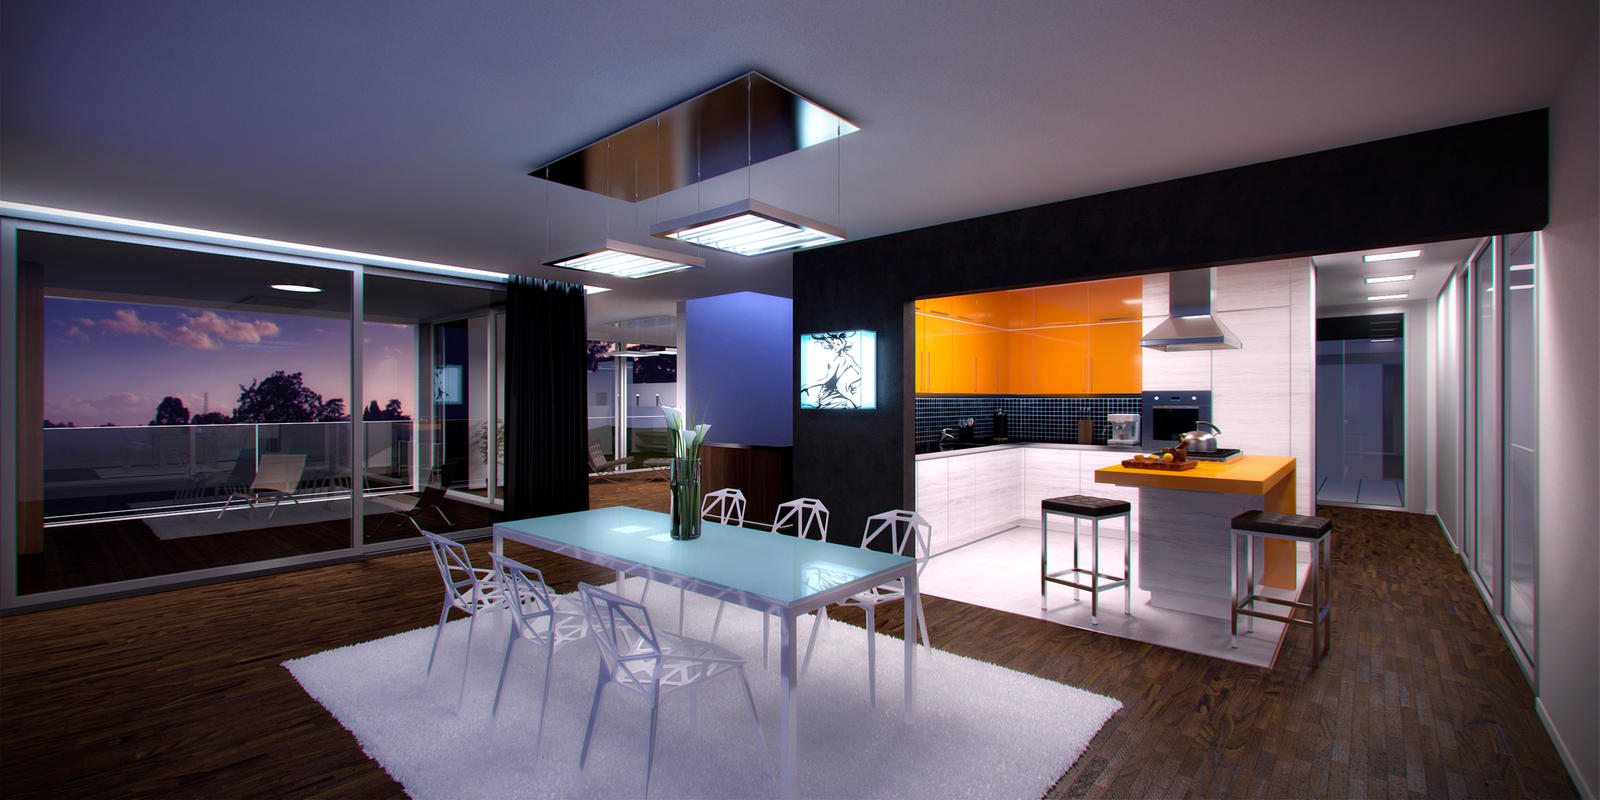 Kern house interior by rudeoz on deviantart for Best house interiors